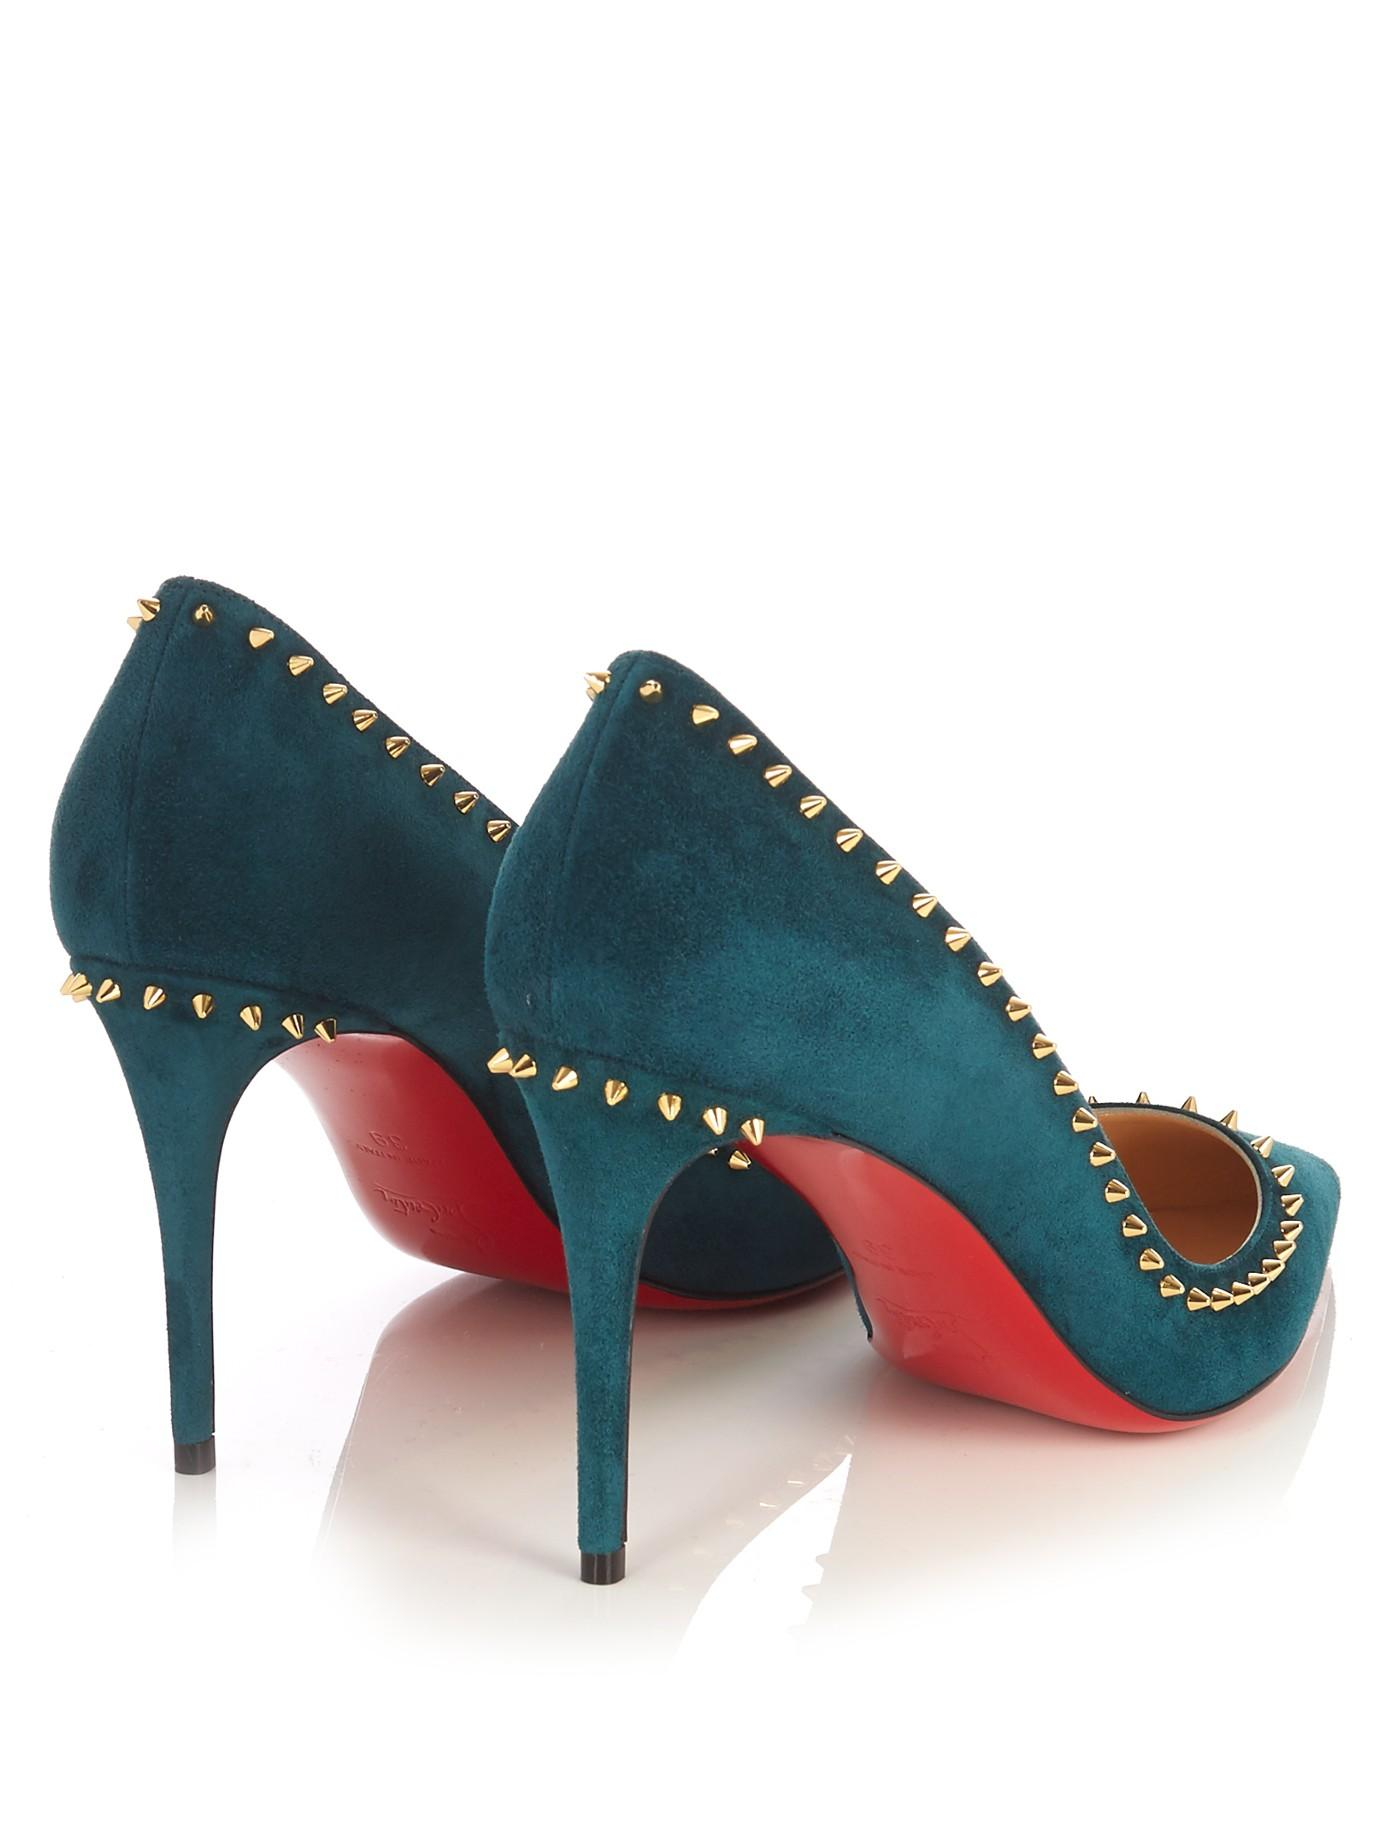 lyst christian louboutin anjalina 85mm suede pumps in green rh lyst com  christian louboutin shoes 85mm